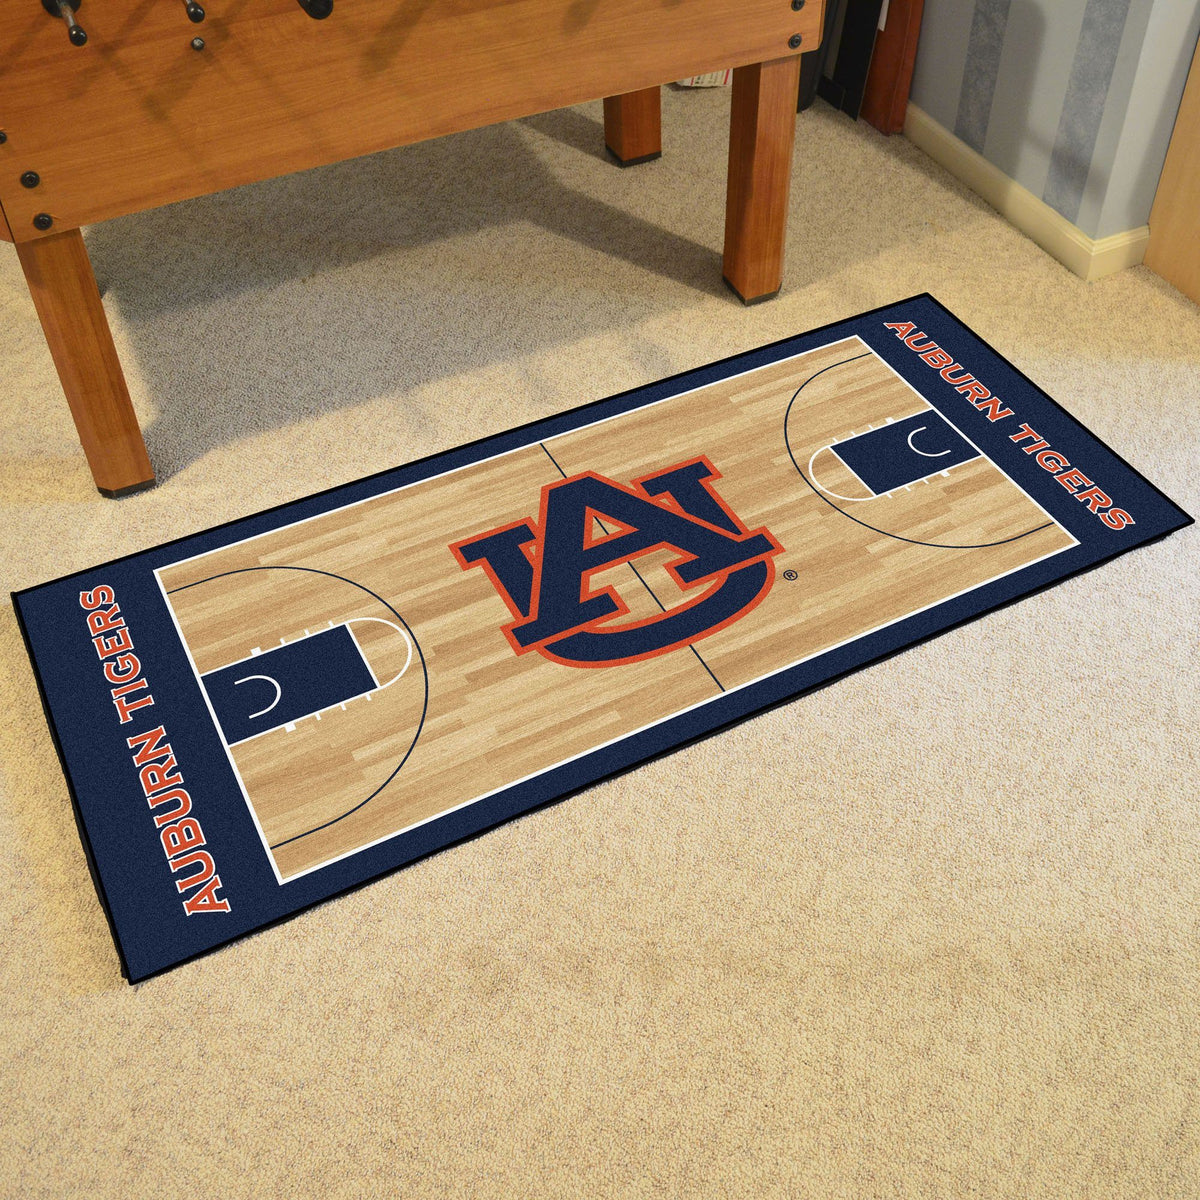 Collegiate - NCAA Basketball Runner Collegiate Mats, Rectangular Mats, NCAA Basketball Runner, Collegiate, Home Fan Mats Auburn